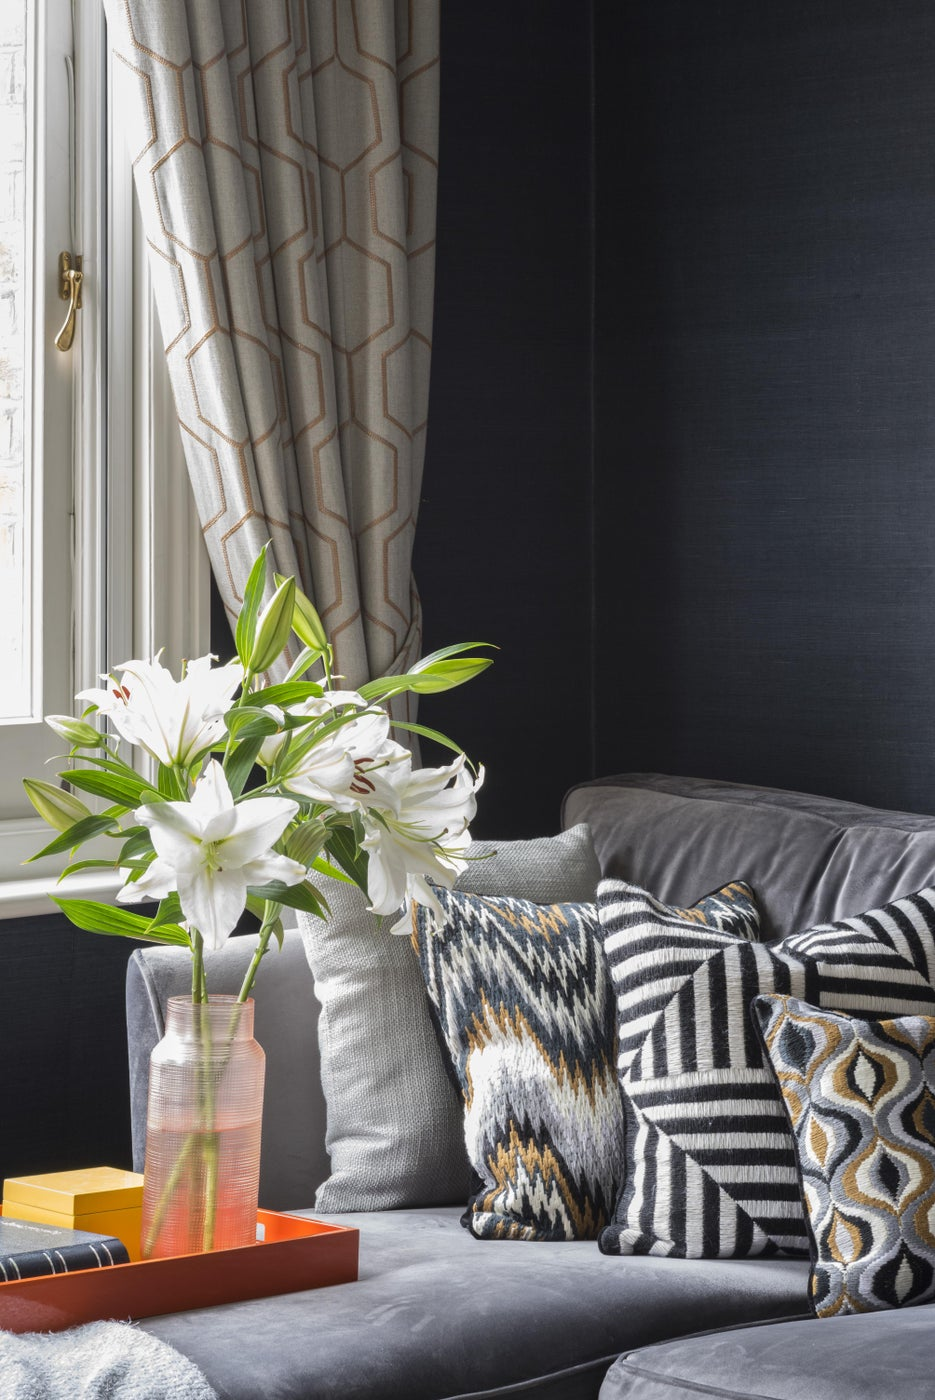 Brook Green Apartment, London - Copper curtain details and monochrome cushions